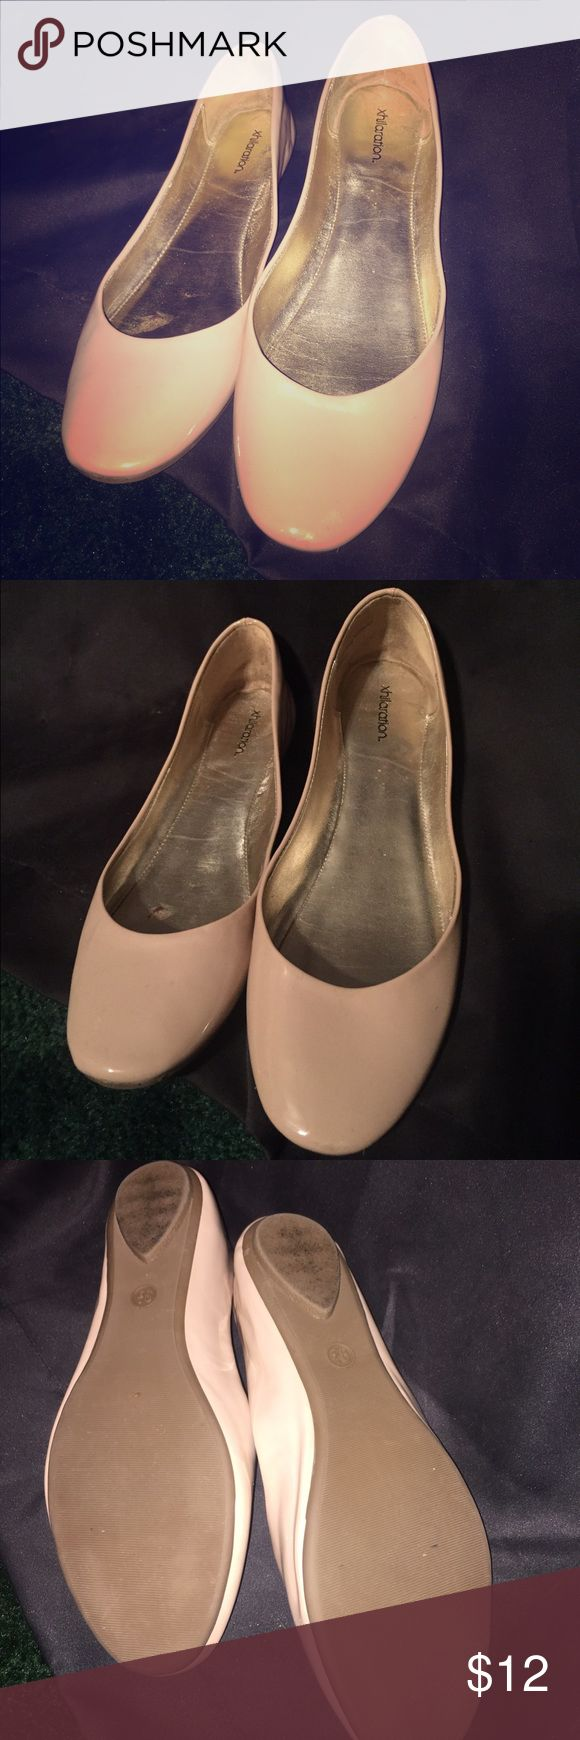 Nude Flats Worn once nude flats! US size 9.5 fit more like a 9. Very comfortable. In great shape!! Xhilaration Shoes Slippers